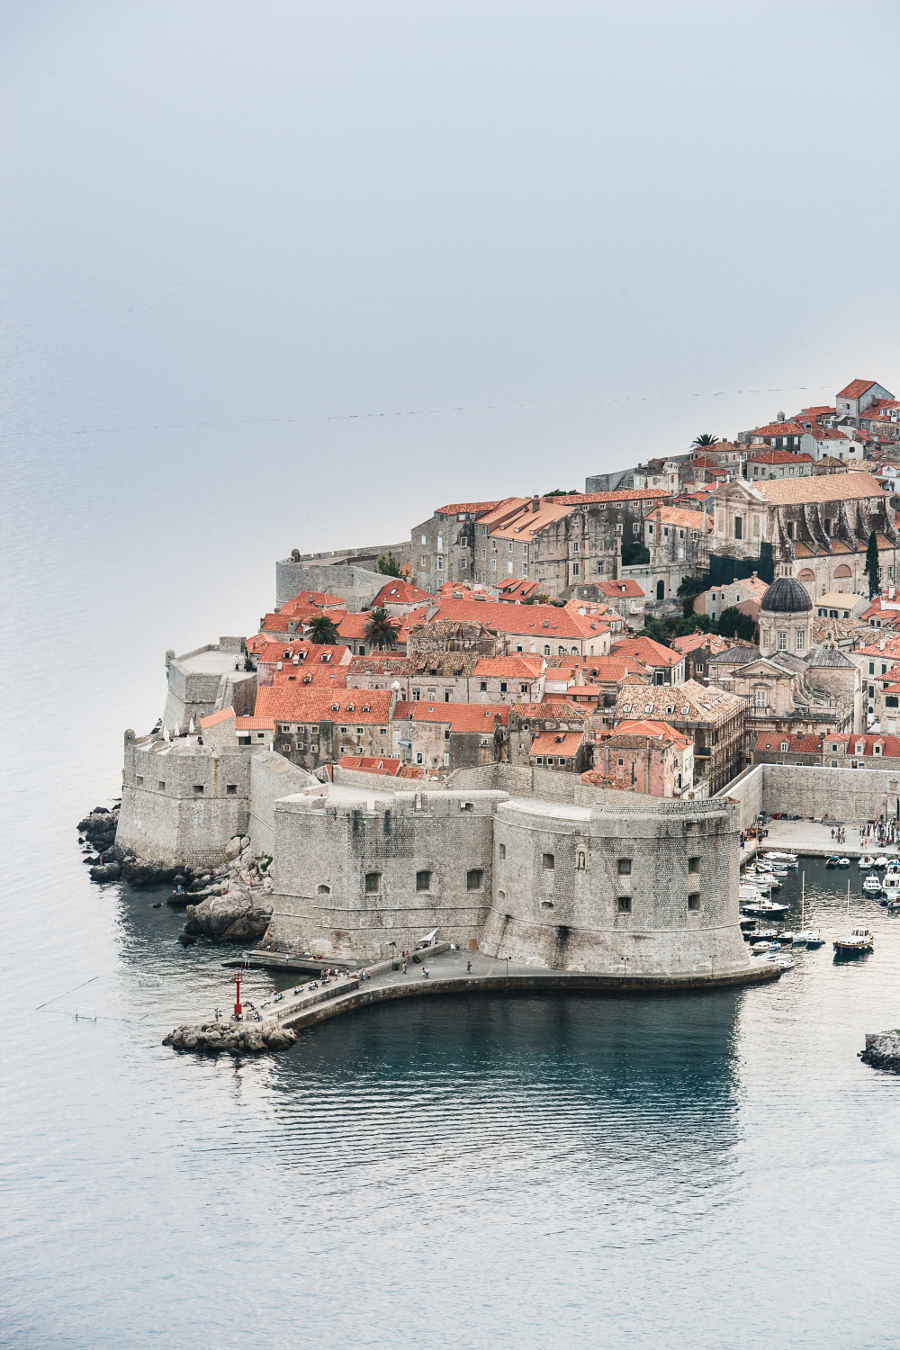 Discover dubrovnik old town guided walking tour - Discover Dubrovnik Old Town Guided Walking Tour 33